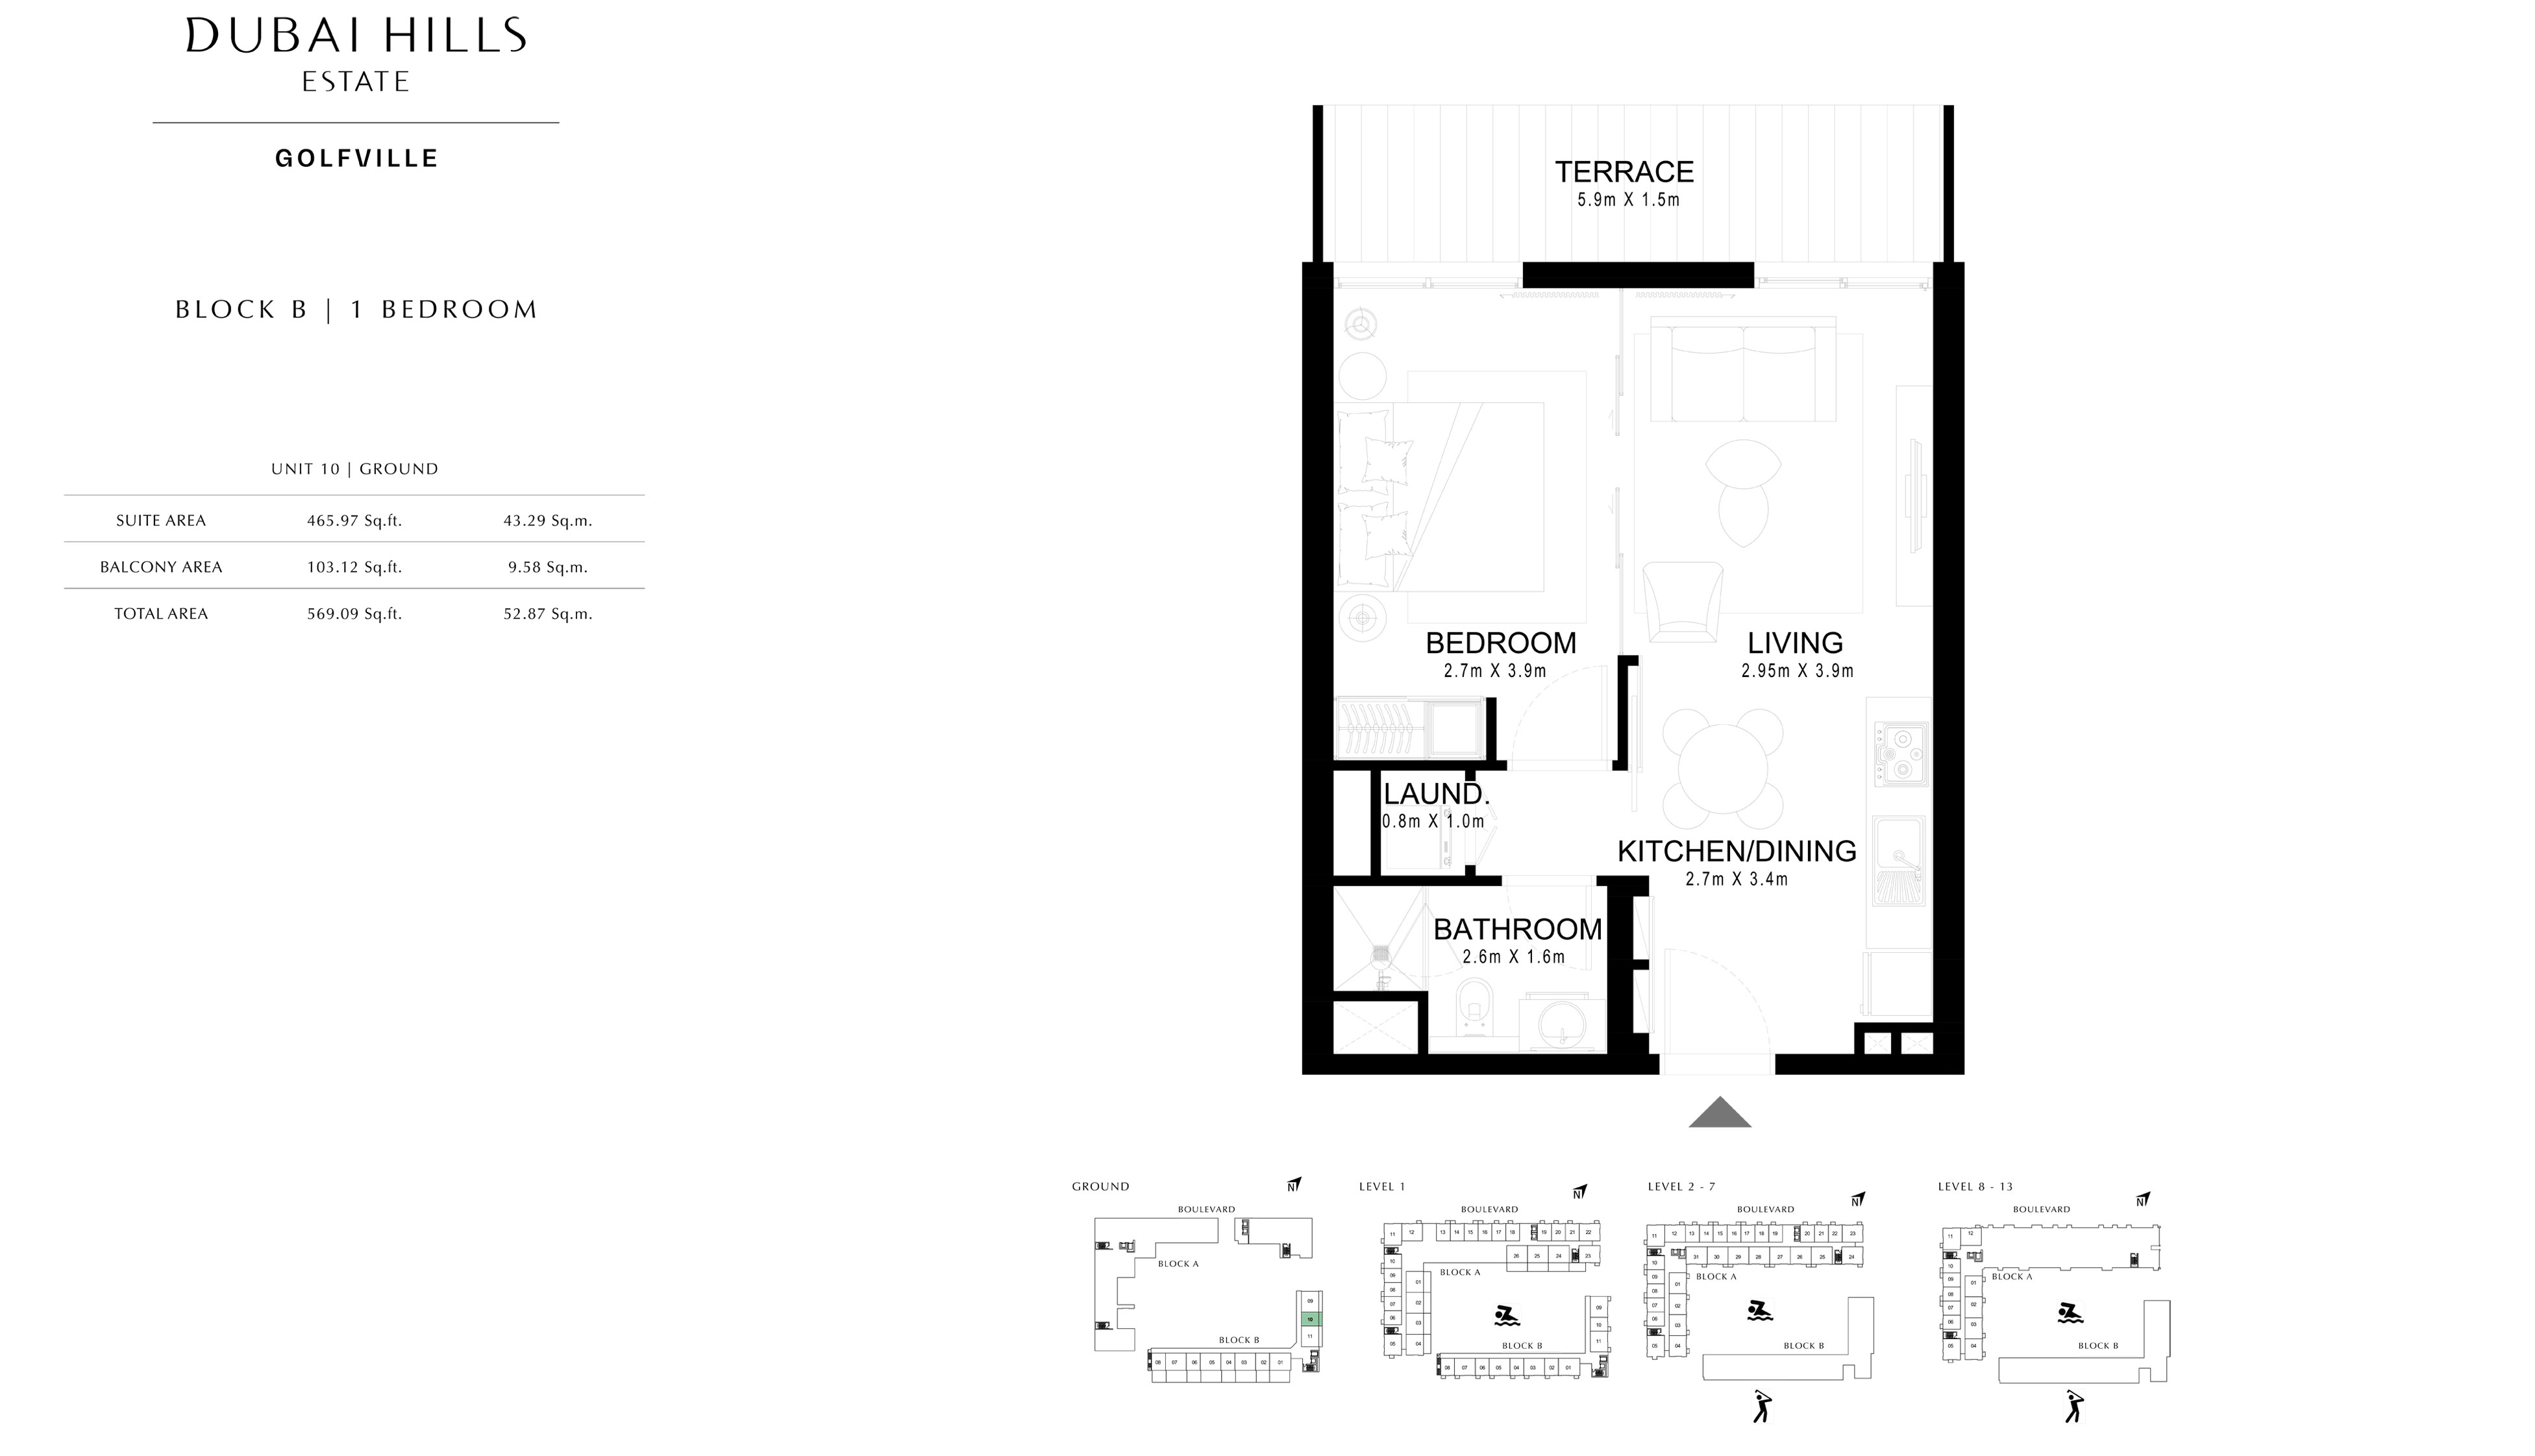 https://drehomes.com/wp-content/uploads/1-Bedroom-Block-B-Unit-10-569-09SqFt.jpg